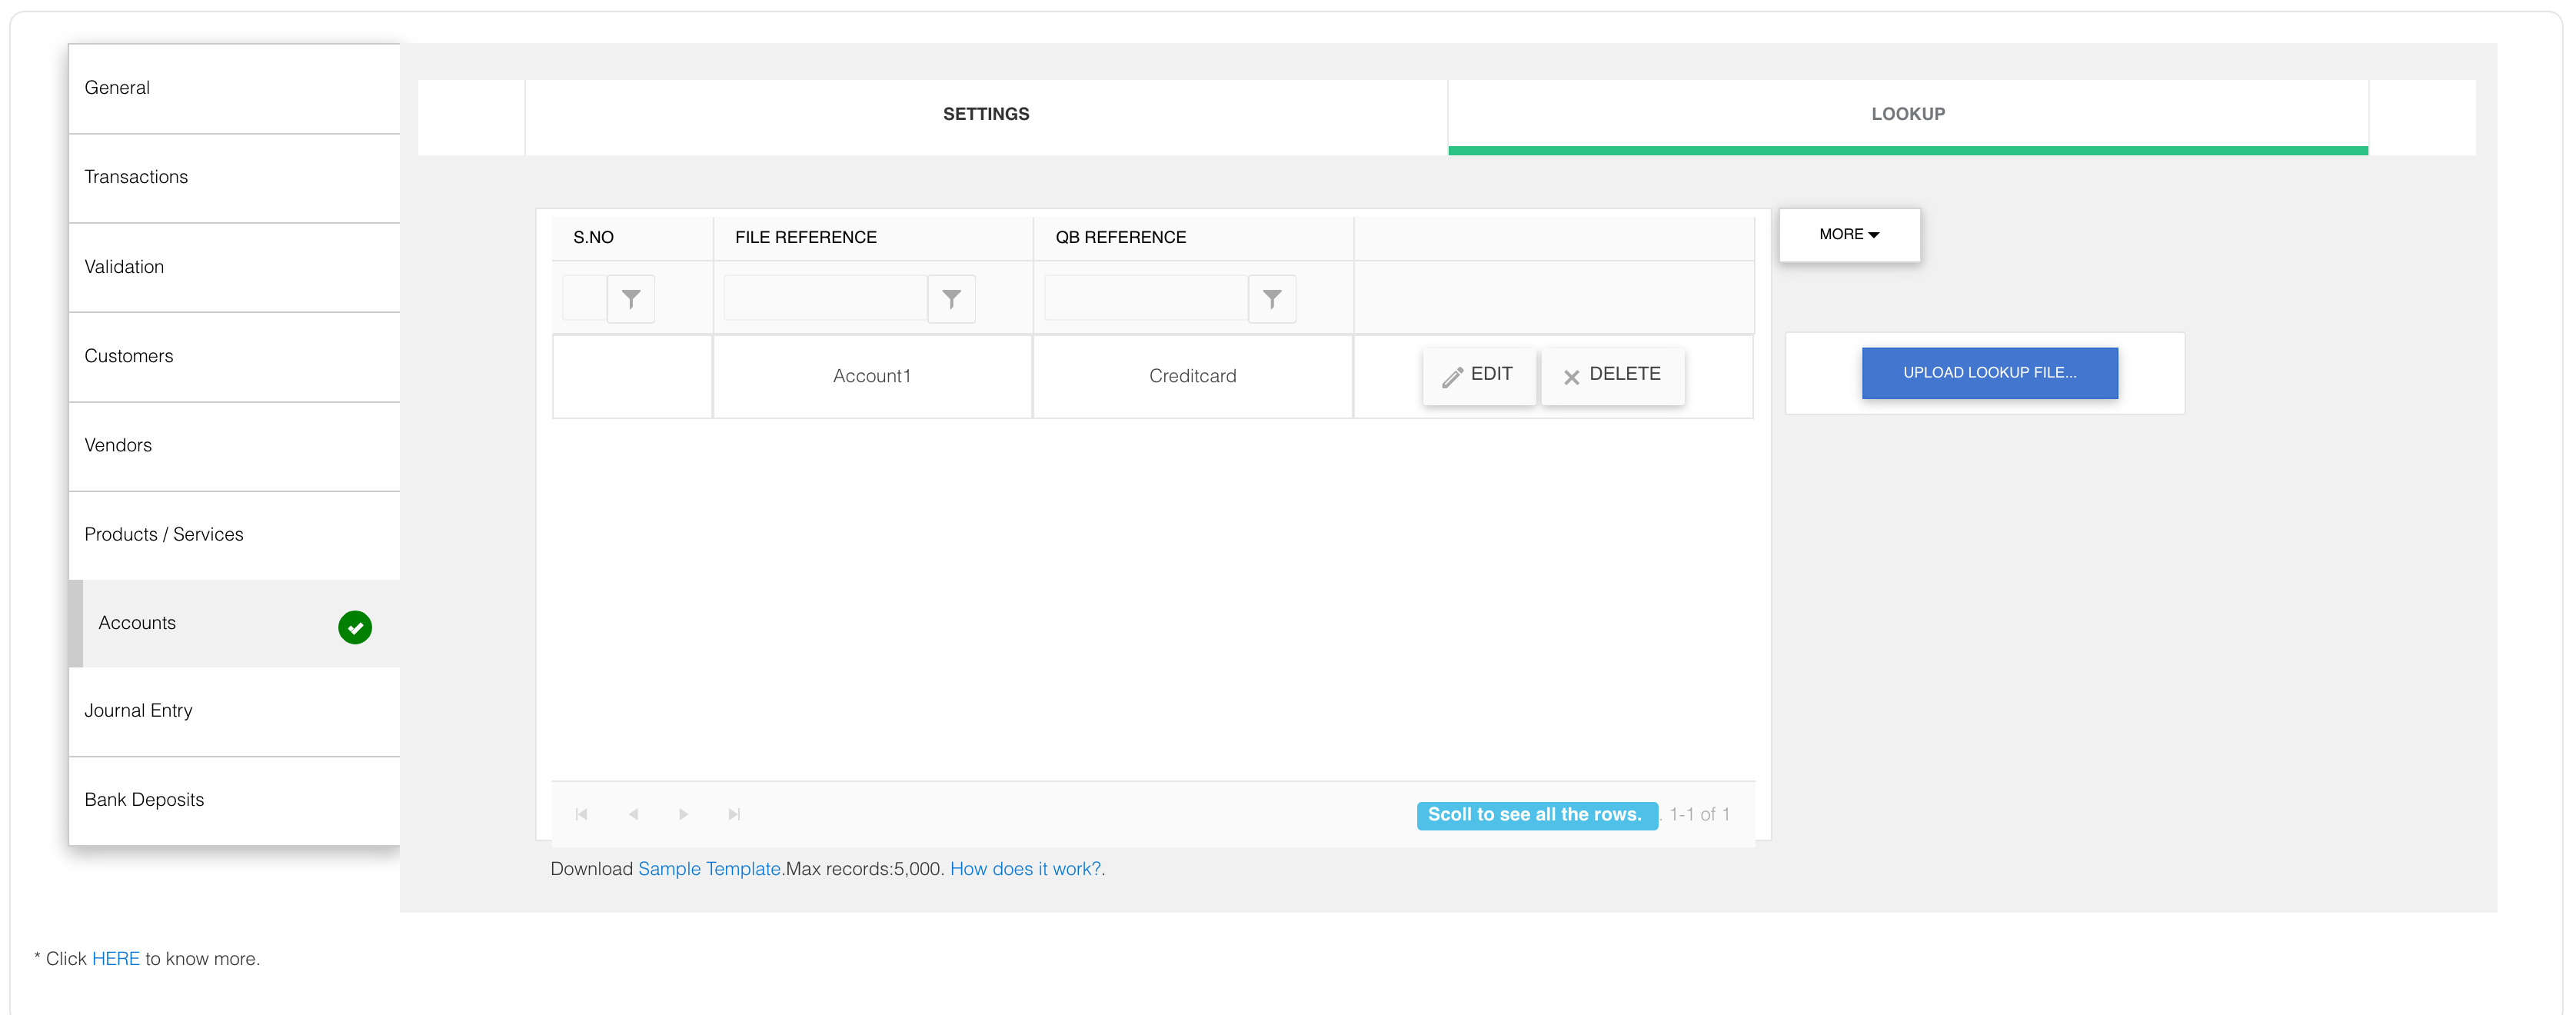 match your own Account names with QuickBooks names